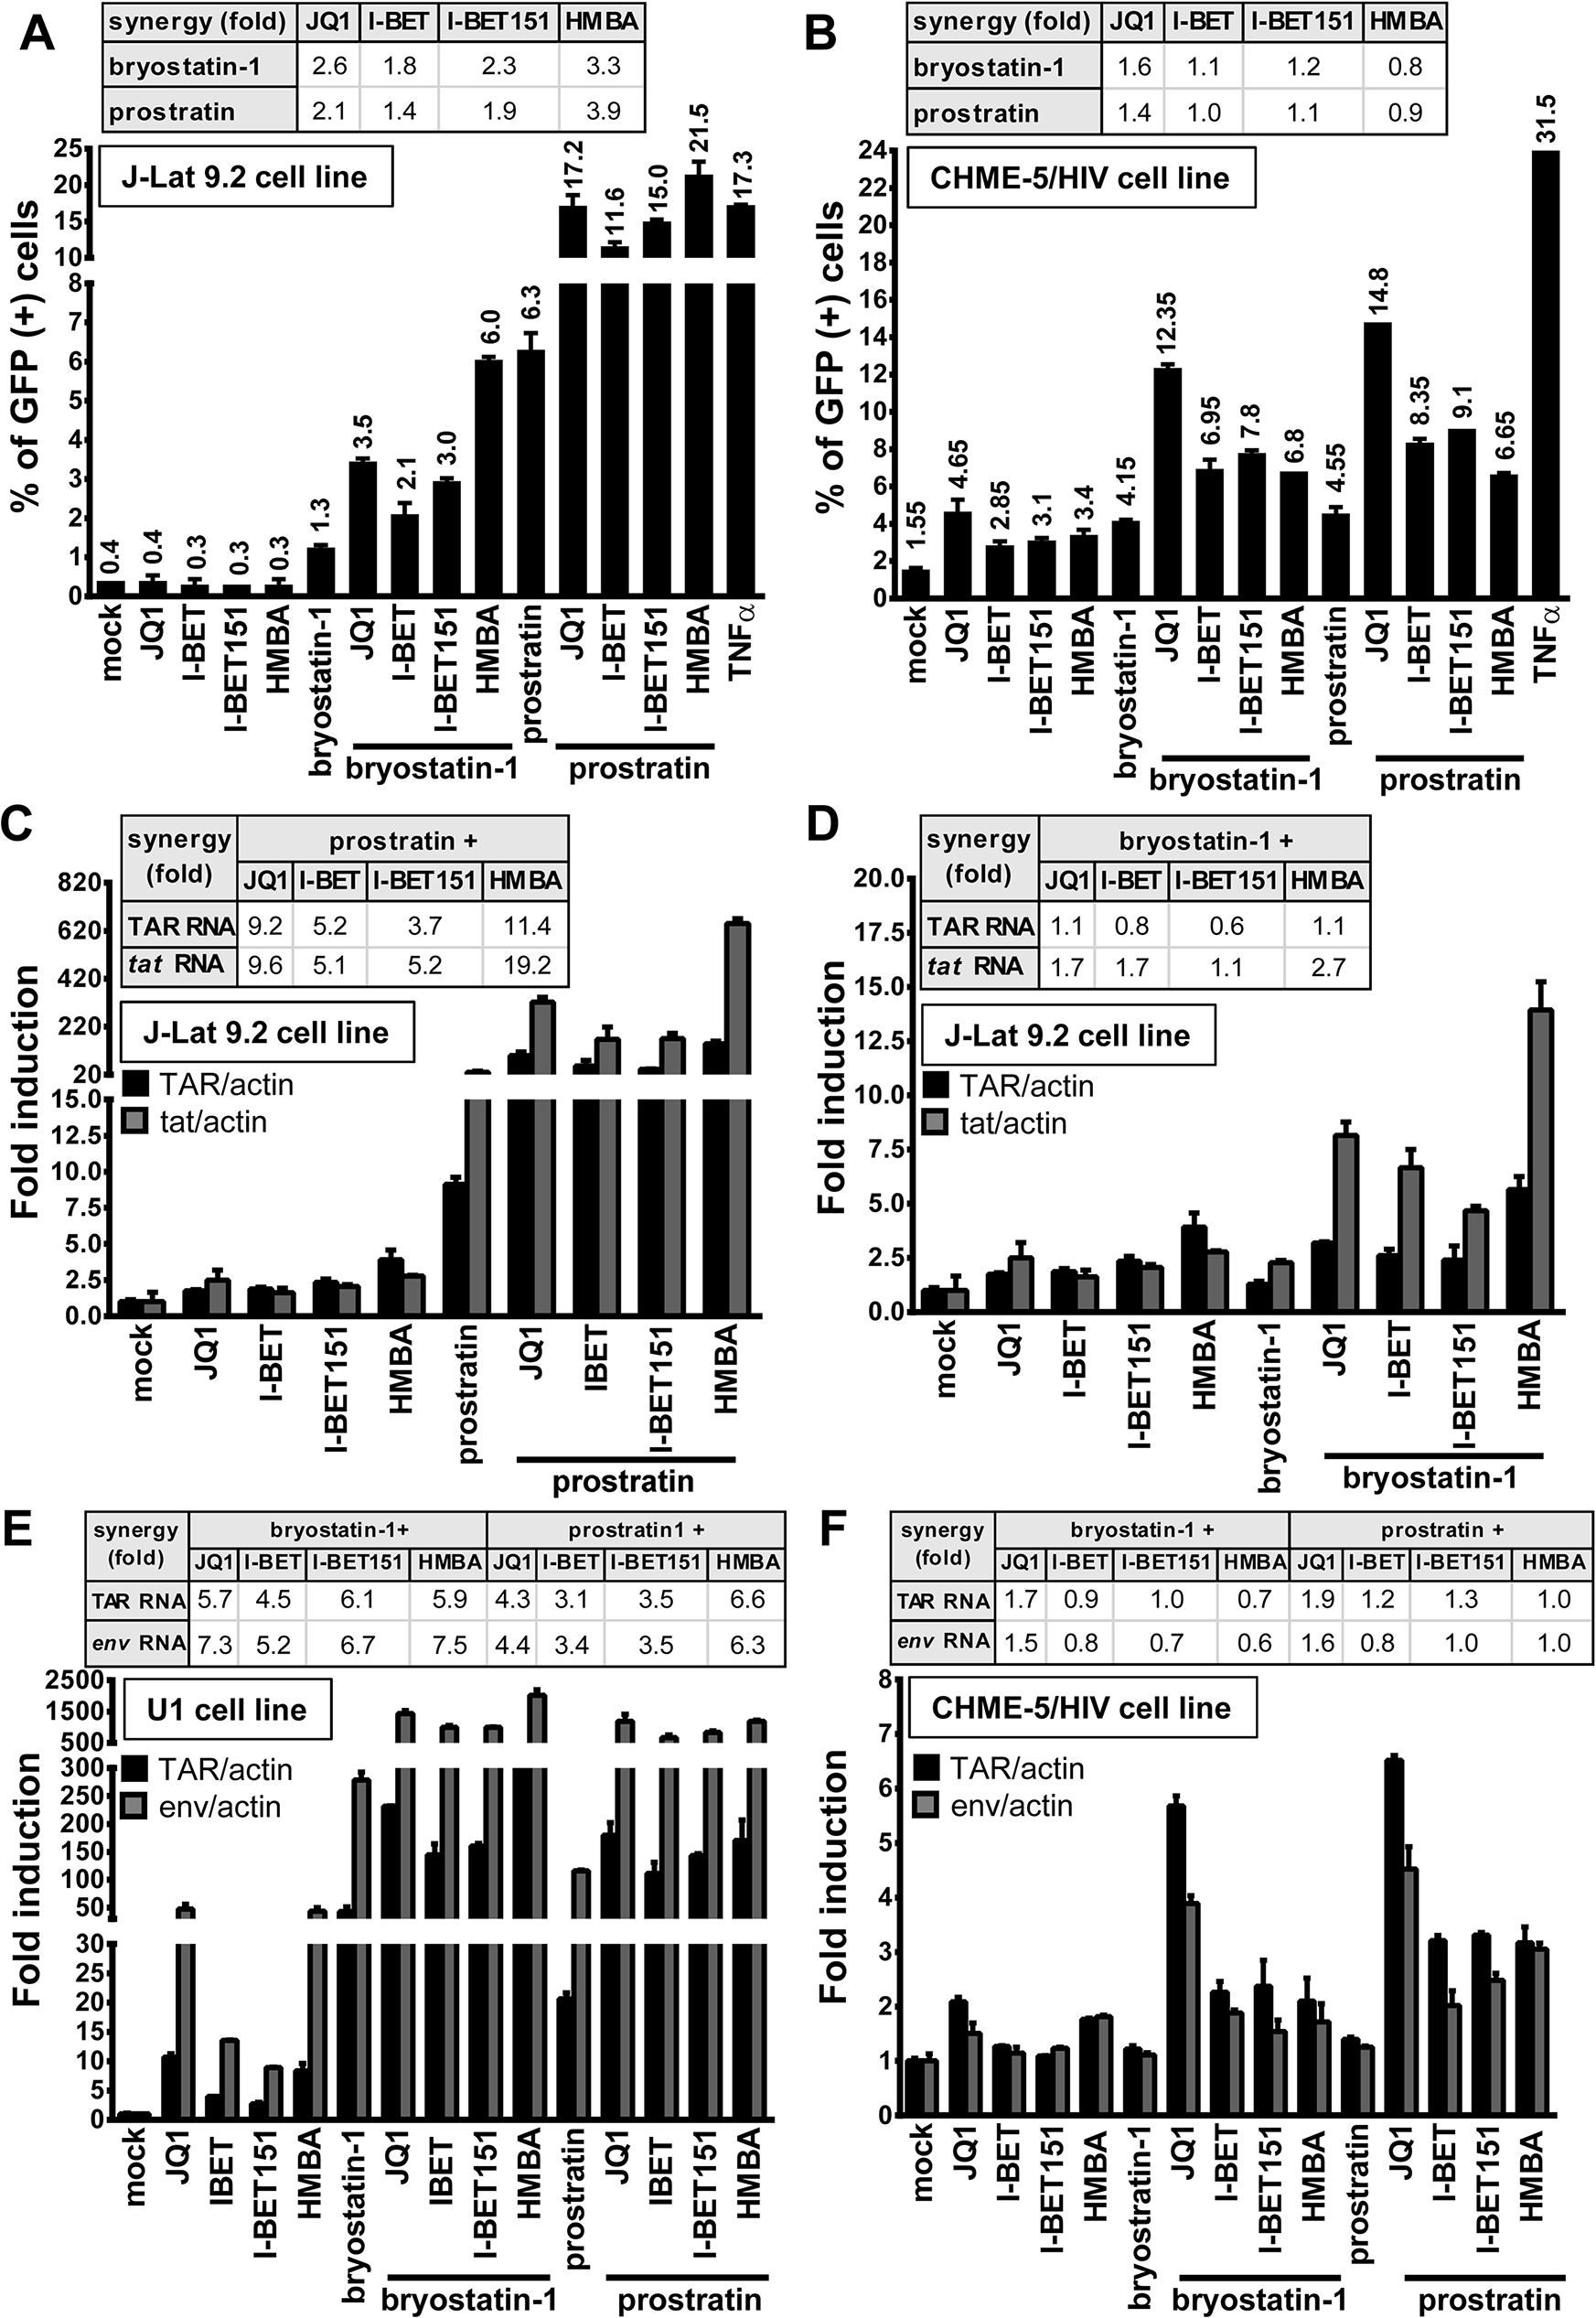 PKC agonist+BETi/HMBA combined treatments increase HIV-1 expression in a higher proportion of cells than the drug alone and synergistically enhance viral transcription.